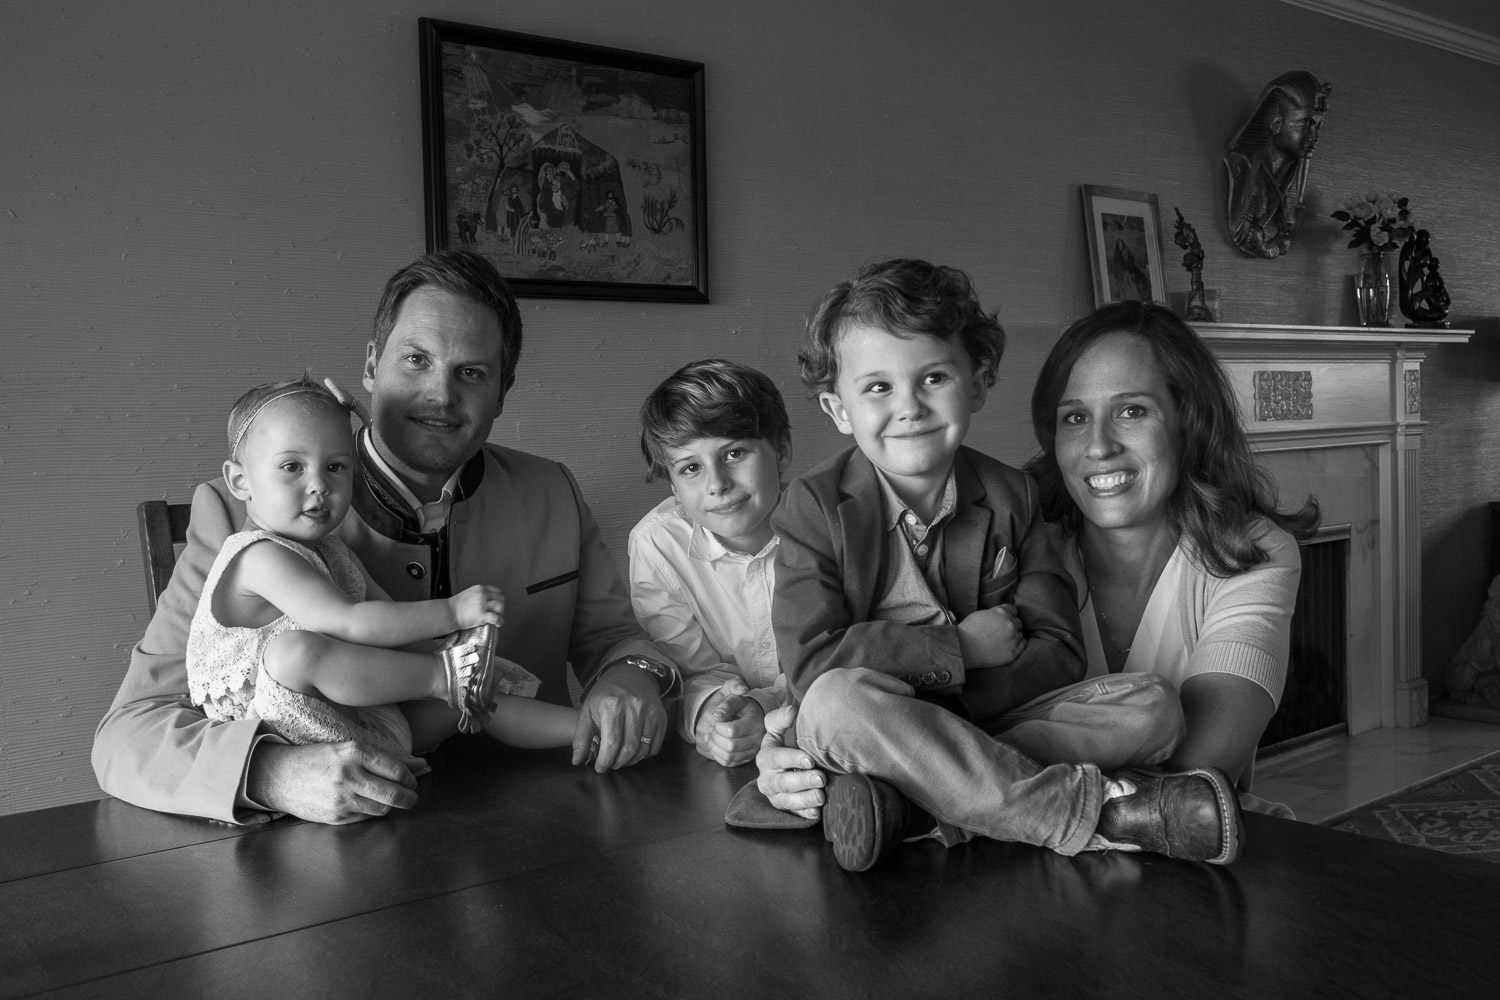 utah-family-portrait-photography-5589.jpg